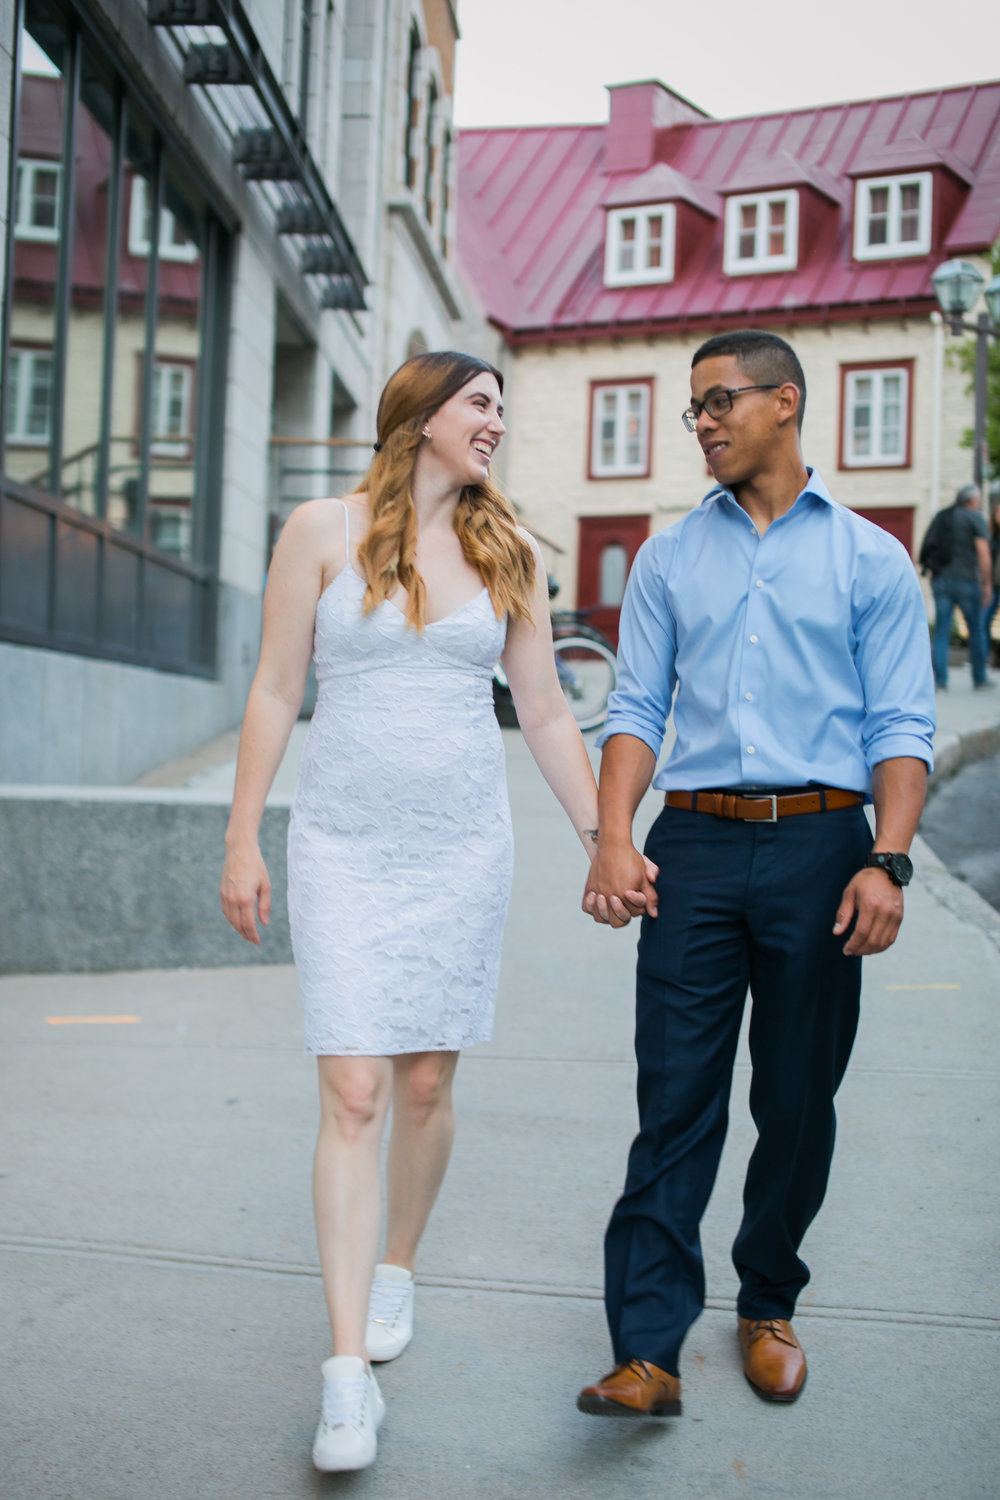 Vieux Old quebec engagement photos at sunset by Ness Photography.7.jpg